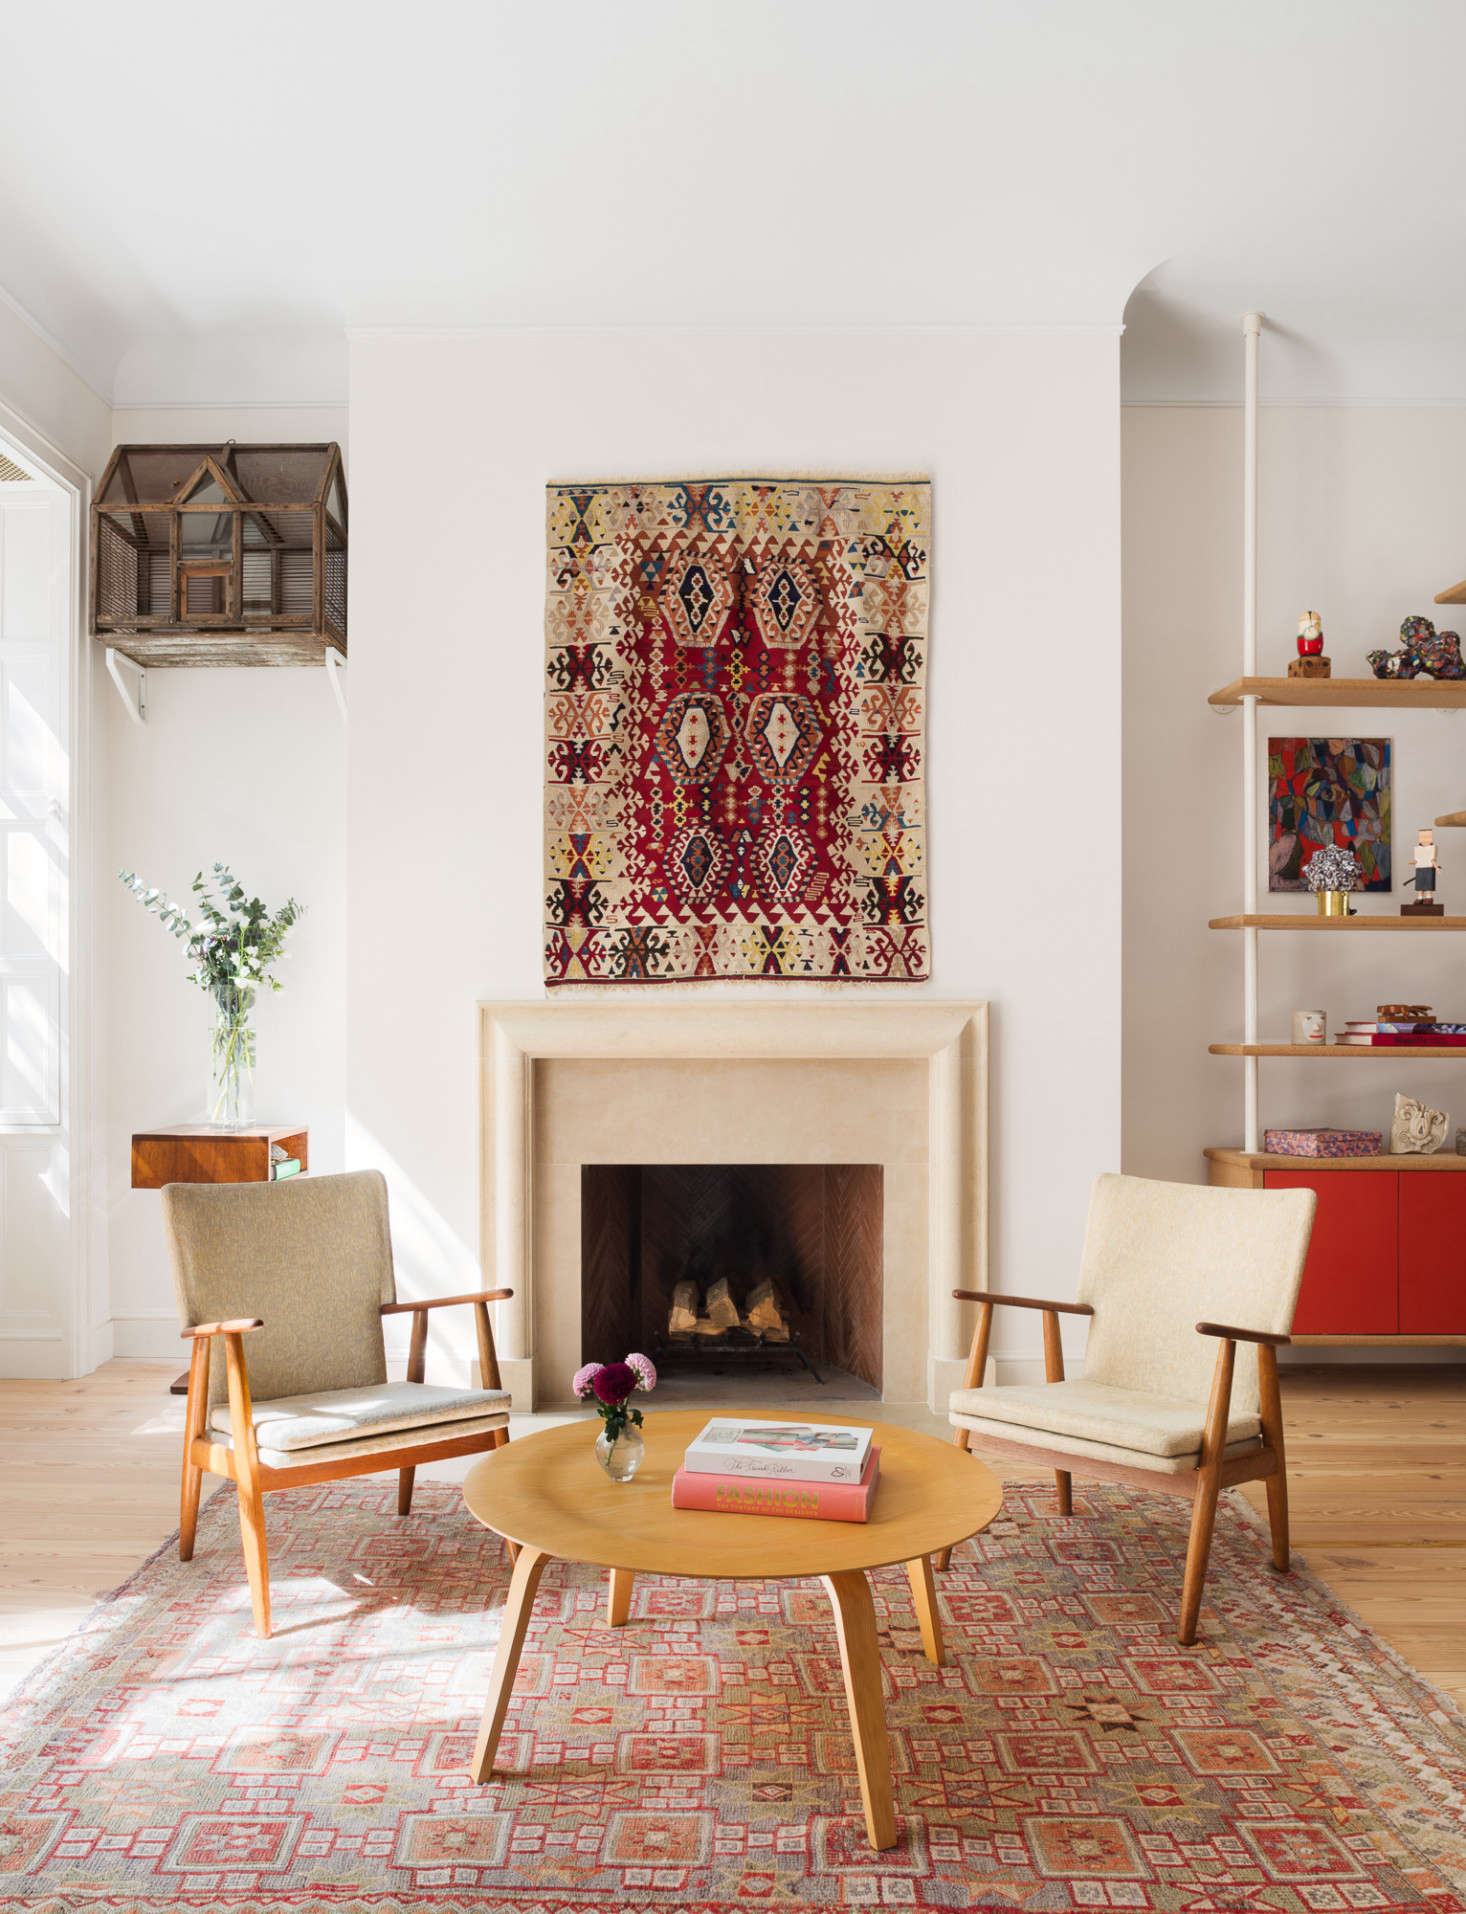 Custom Room Design Online: An 1828 Federal Style Townhouse Remodeled With Color And